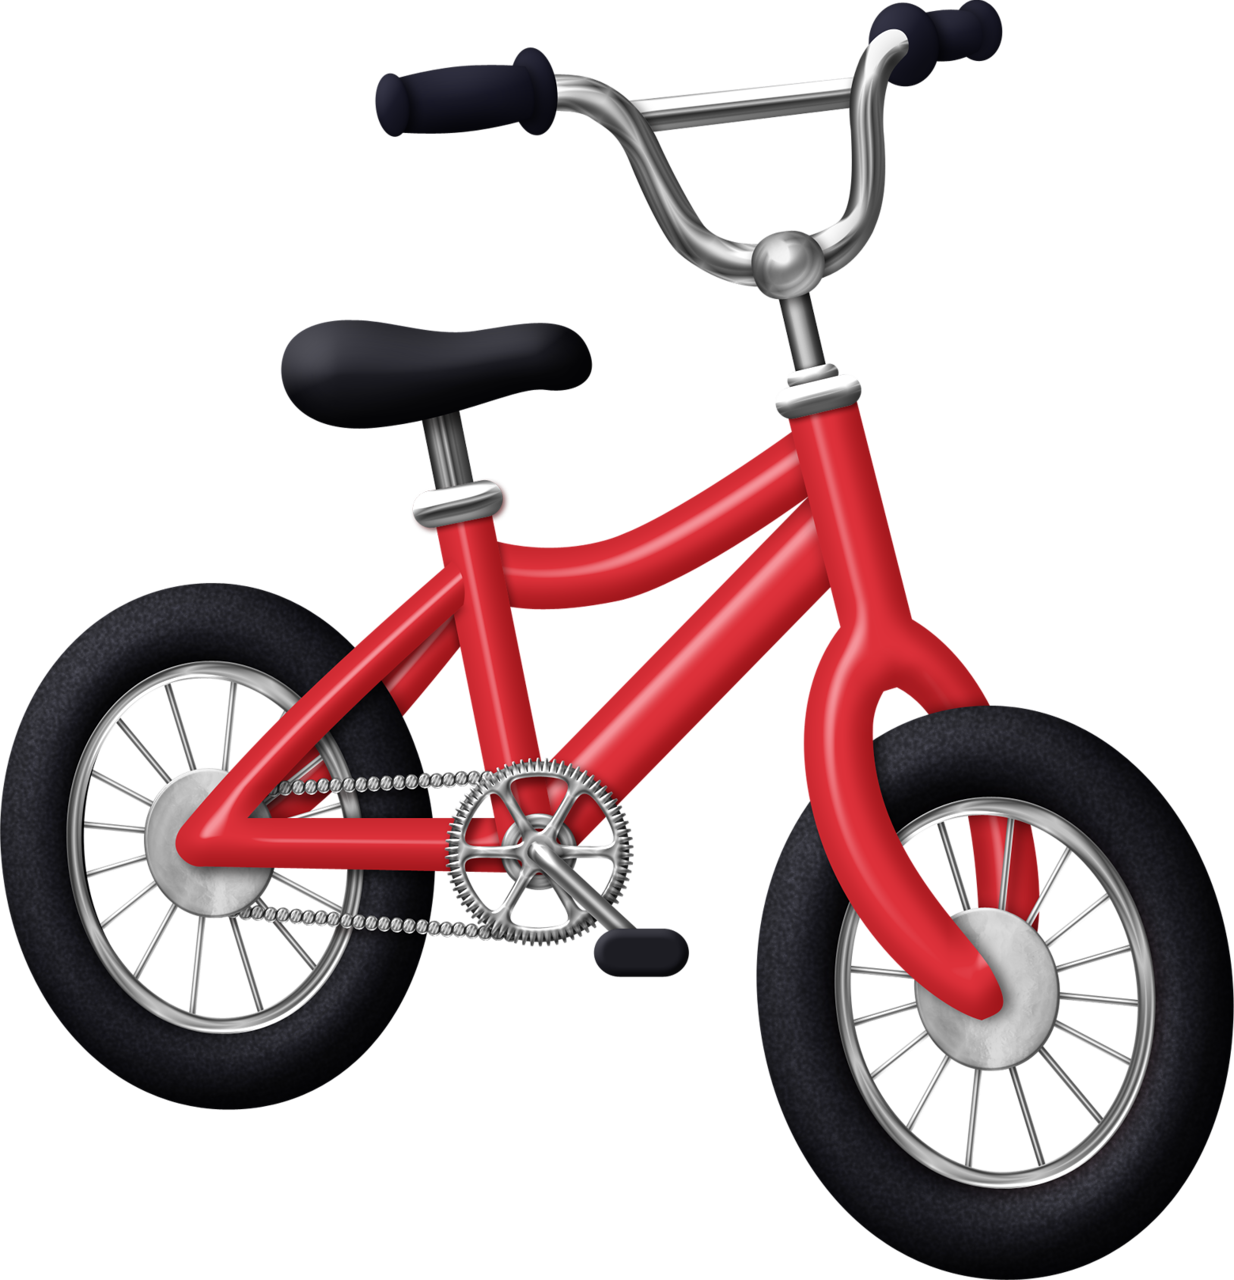 Tricycle clipart bicycle. D a orig